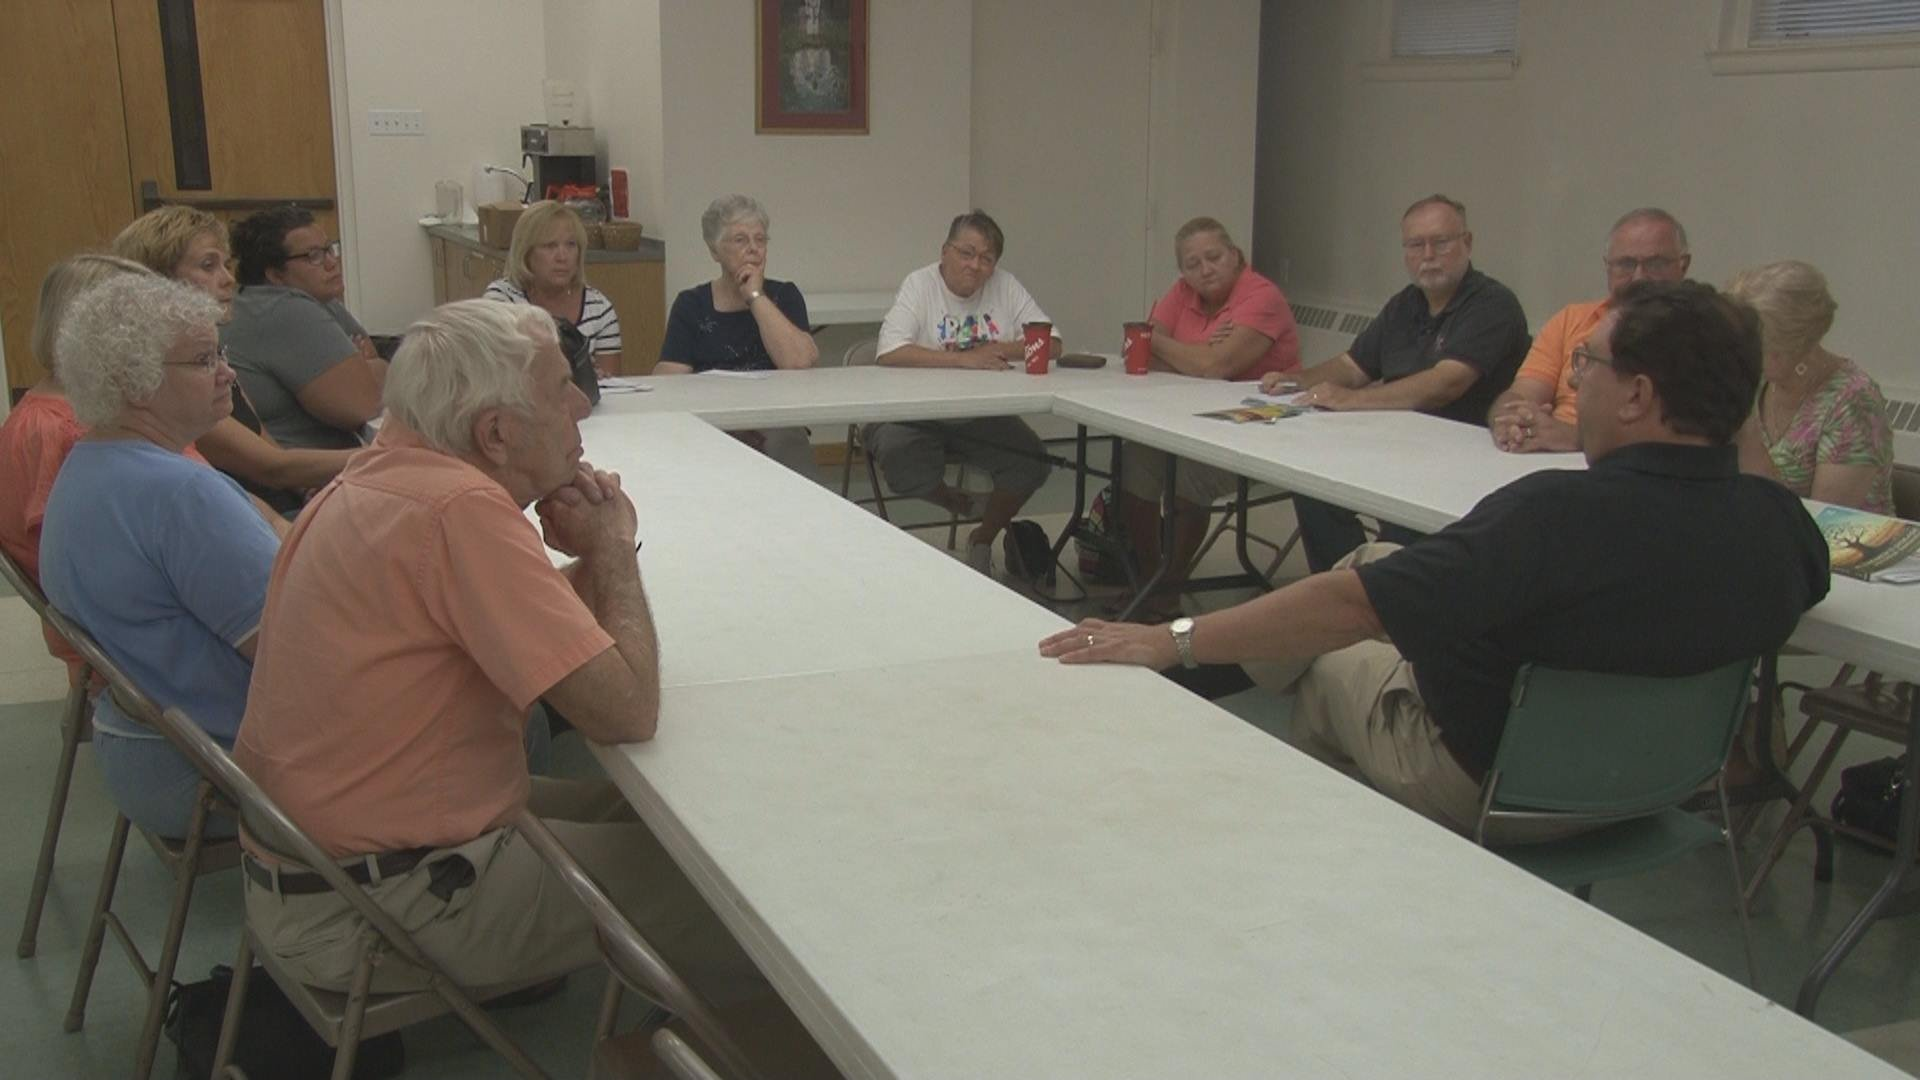 New Support Group for Rare form of Dementia - WBOY - Clarksburg ...